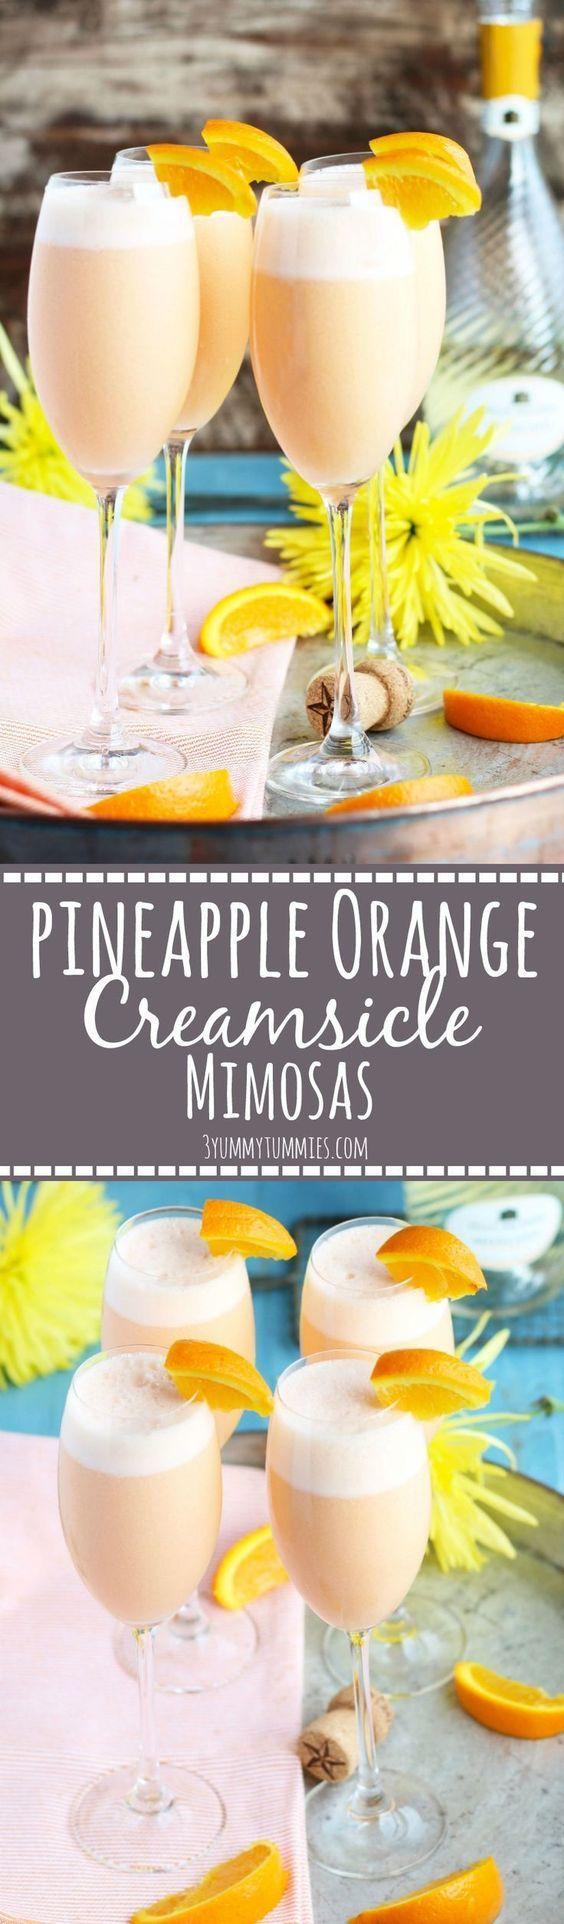 These Pineapple Orange Creamsicle Mimosas are an ethereal blend of pineapple juice, orange sherbet and sparkling Moscato. Only 3 ingredients transforms the basic mimosas into a creamy, dreamy combination that will wow your guests at your next brunch. Blending the ingredients together ensures the perfect flavor combination in each sip and tastes just like a...Read More »